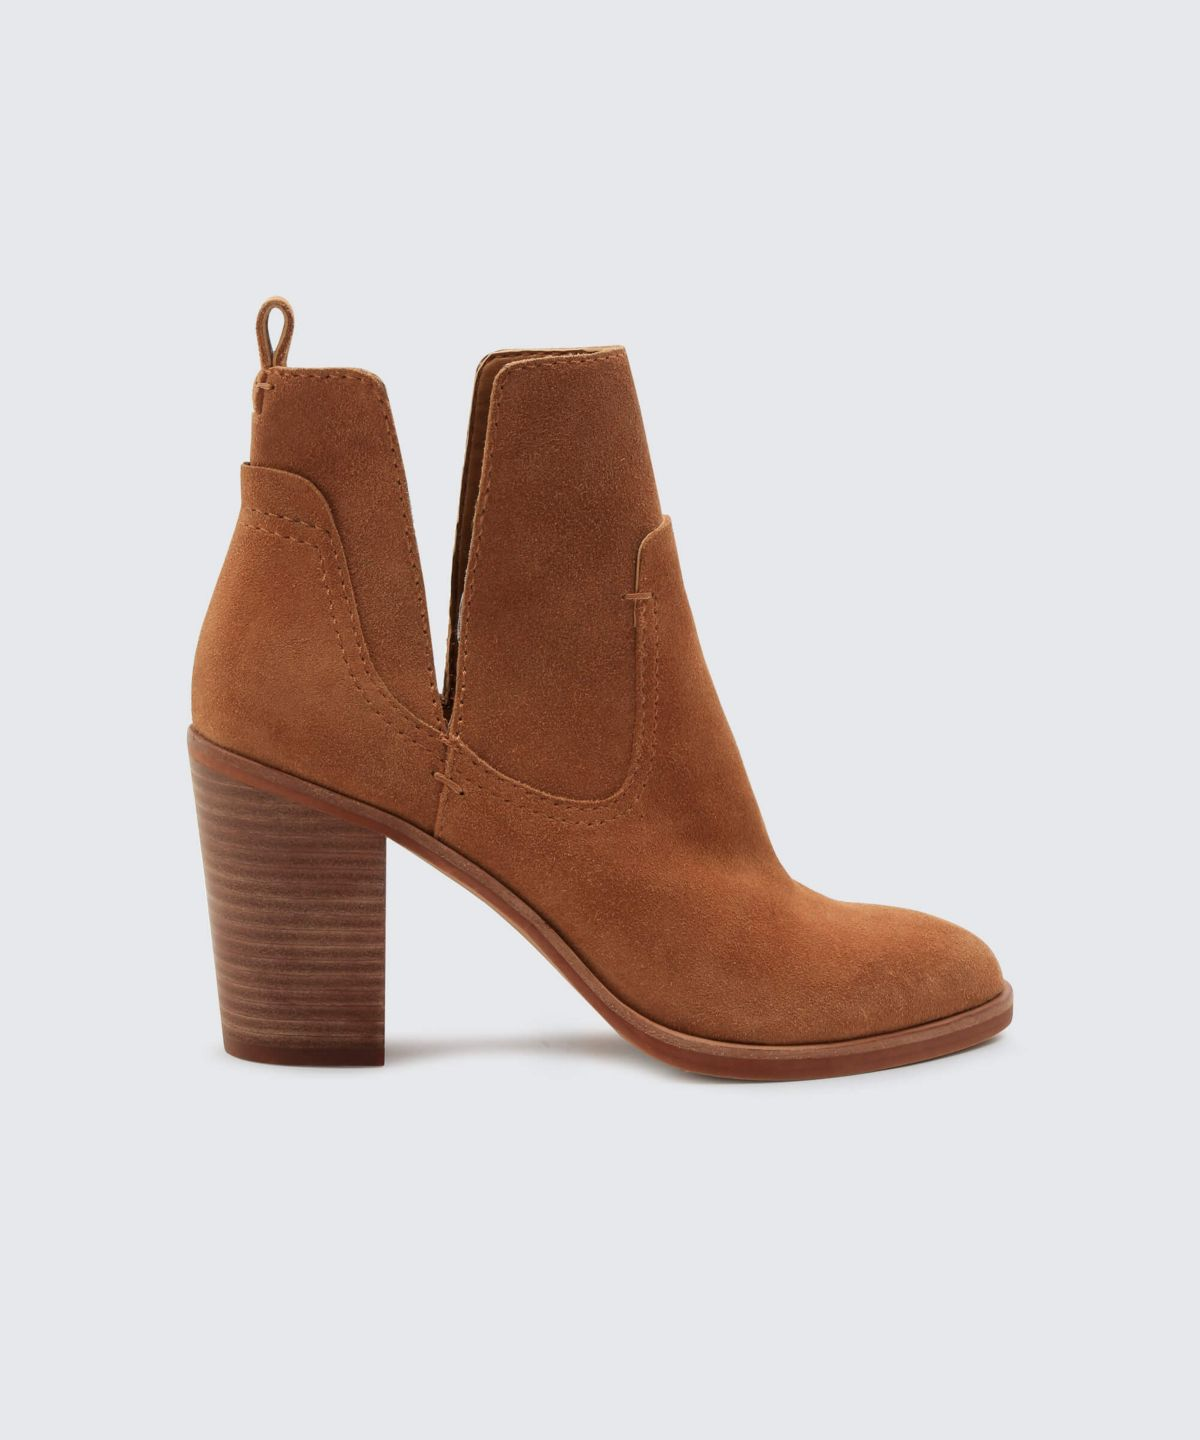 Shay Bootie